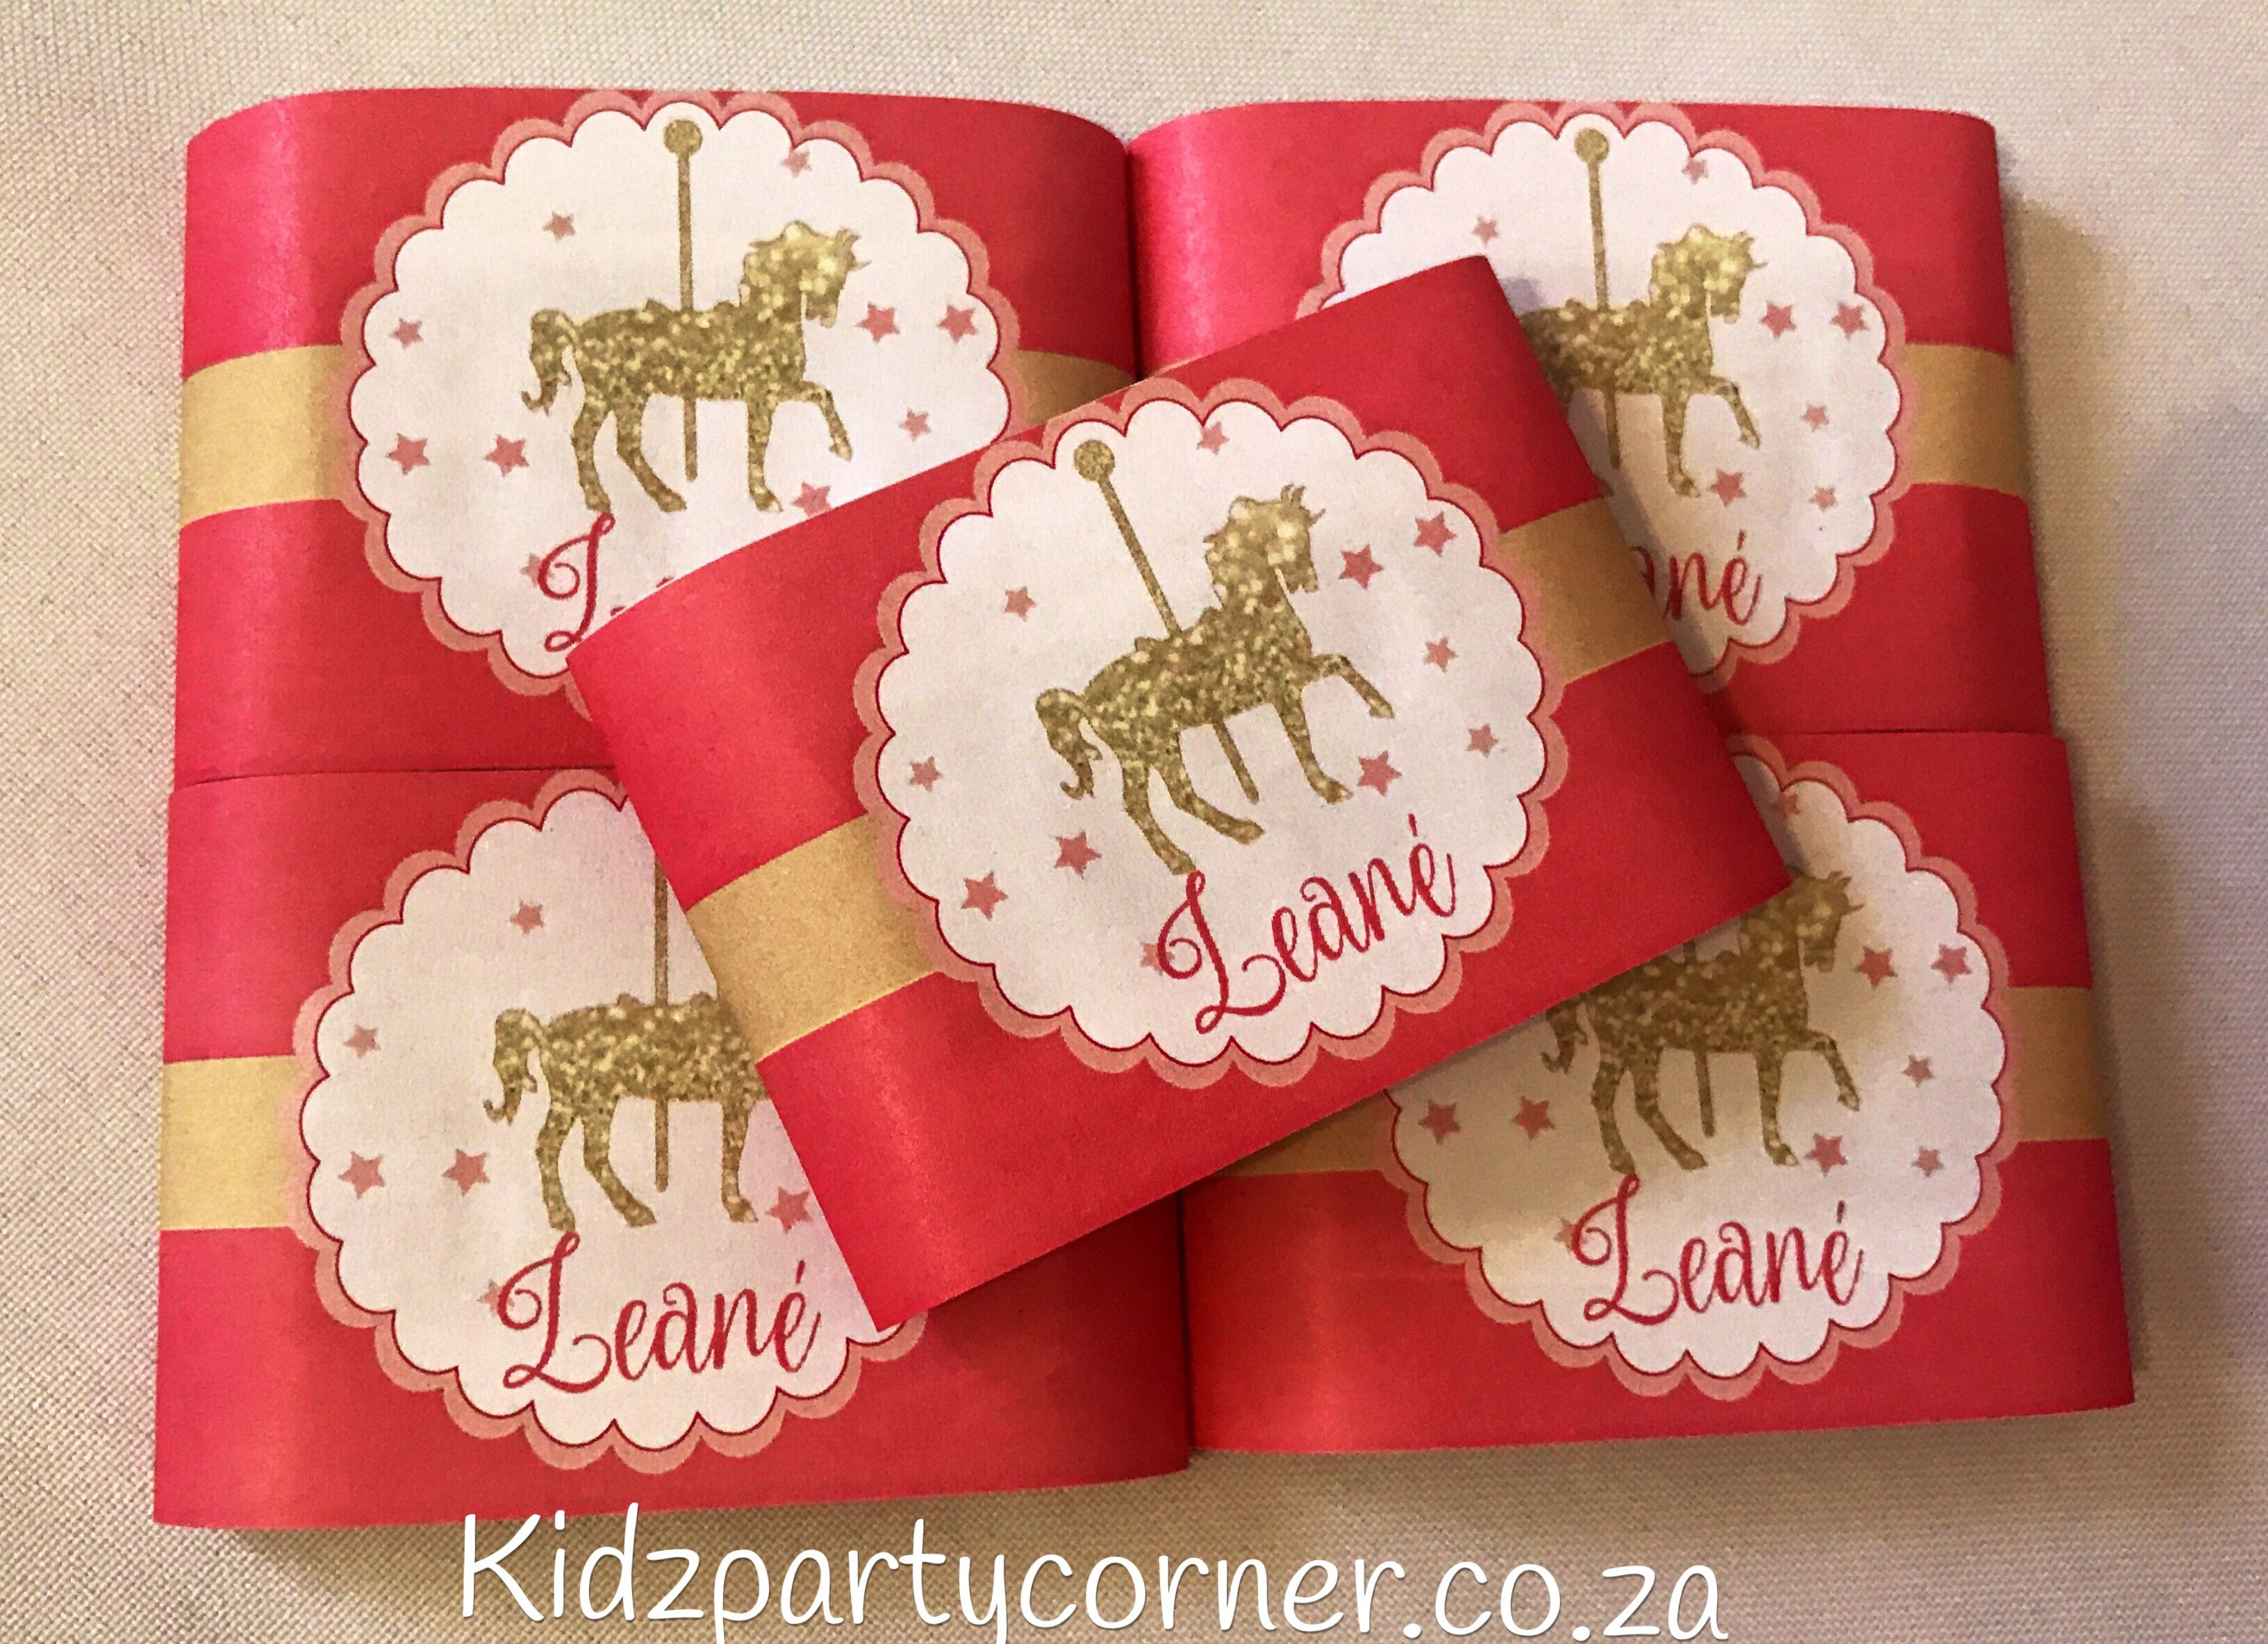 Enchanted Carousel Party Theme supplies, favours and decor. We design and create any theme for any occasion and age customised according to your specifications. Door to door courier country wide at affordable prices - unique and convenient. Styling and set-up packages available in Pretoria and Johannesburg at you own venue or at one of our Alberton venues. Visit our website www.kidzpartycorner.co.za or email Info@kidzpartycorner.co.za @KidzPartyCorner